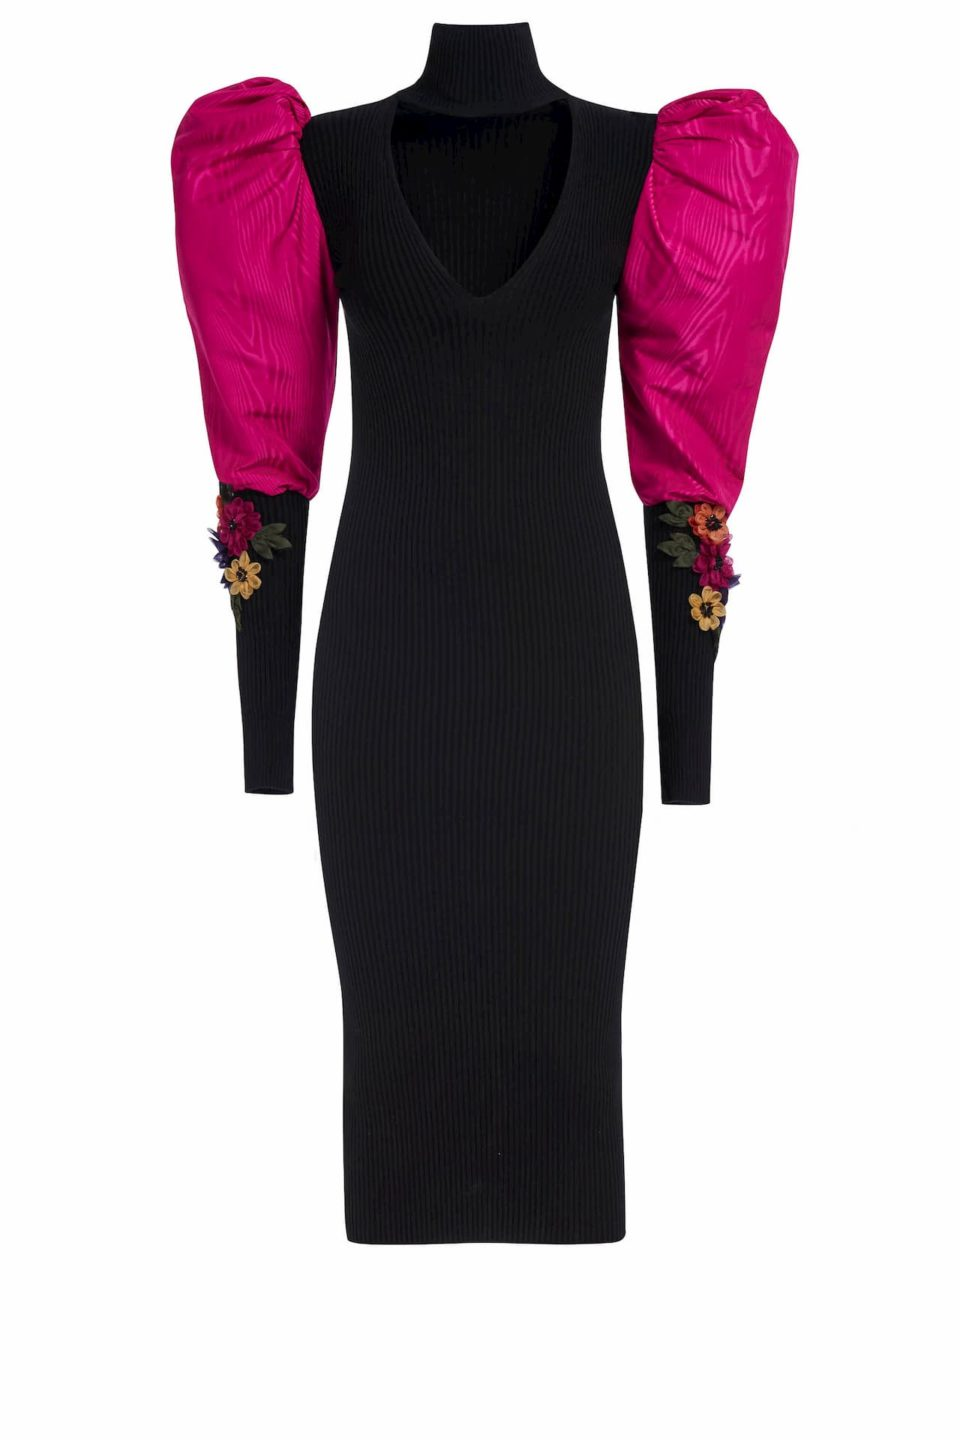 Christia PR2060 Ribbed-Knit Body Con Midi Dress with Keyhole Neckline & Puffed Taffeta Sleeves & 3D Flower Appliques